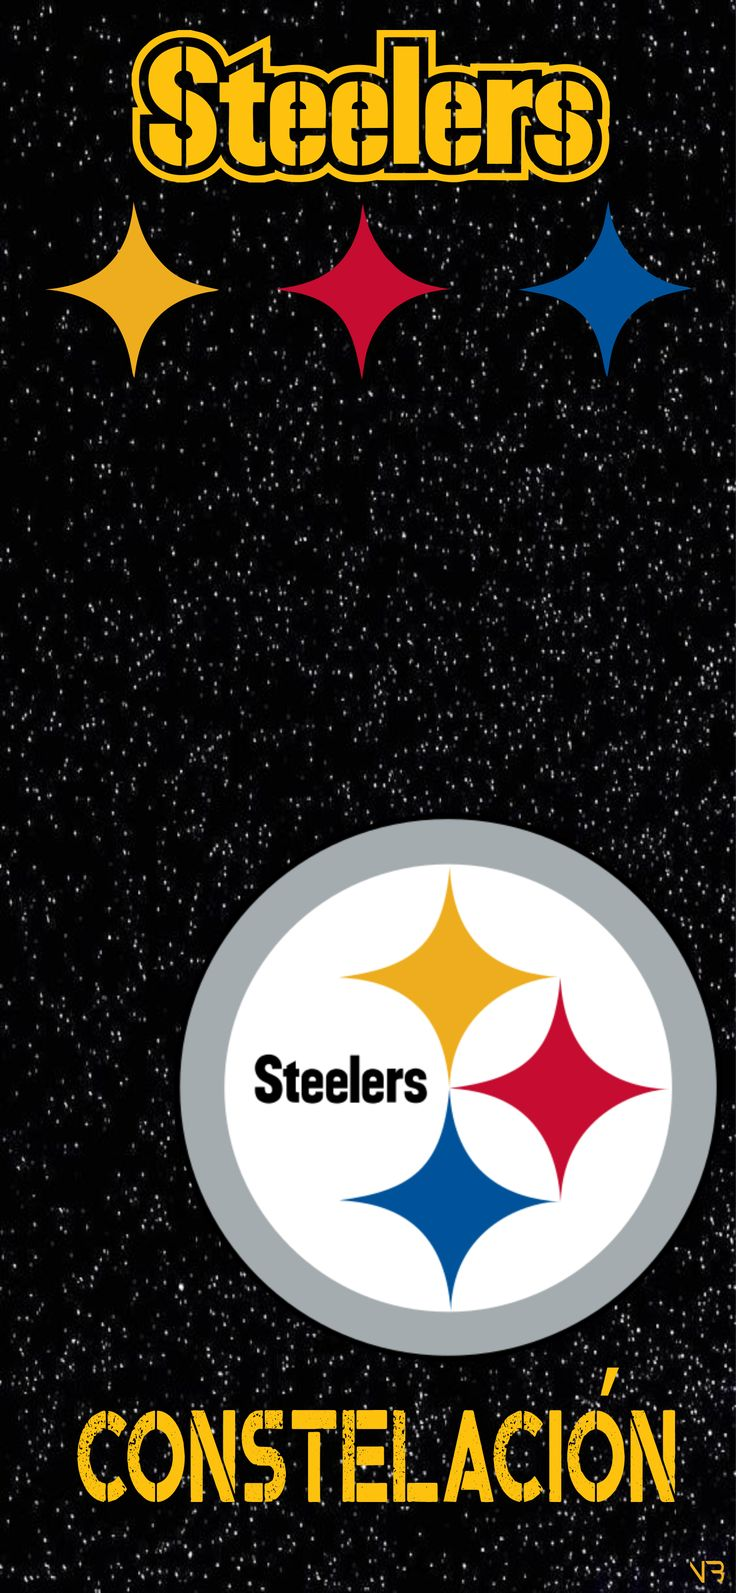 Pin by Nelson Bayardo on Fondos STEELERS in 2020